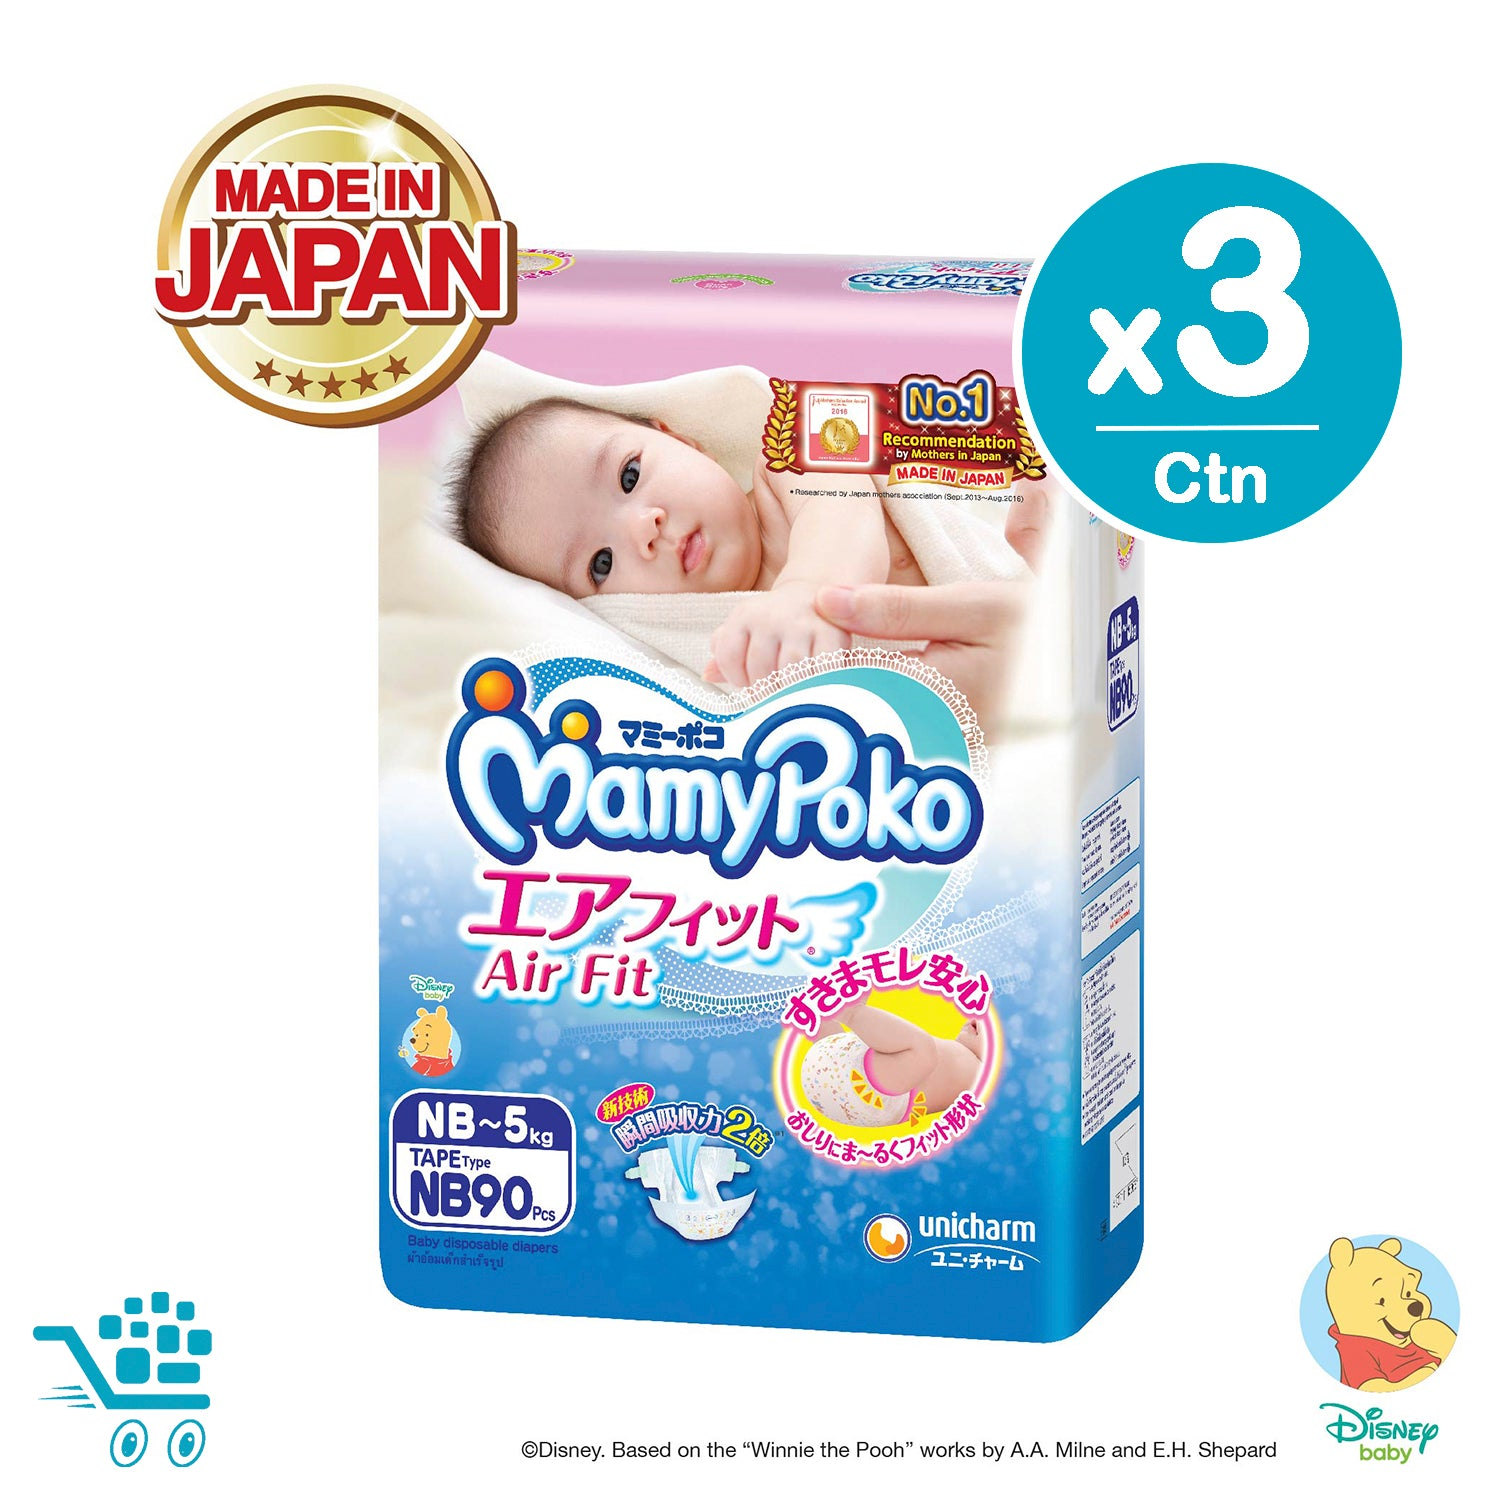 Mamypoko Air Fit Tape Type - NB 90 pieces x 3 packs JPQ